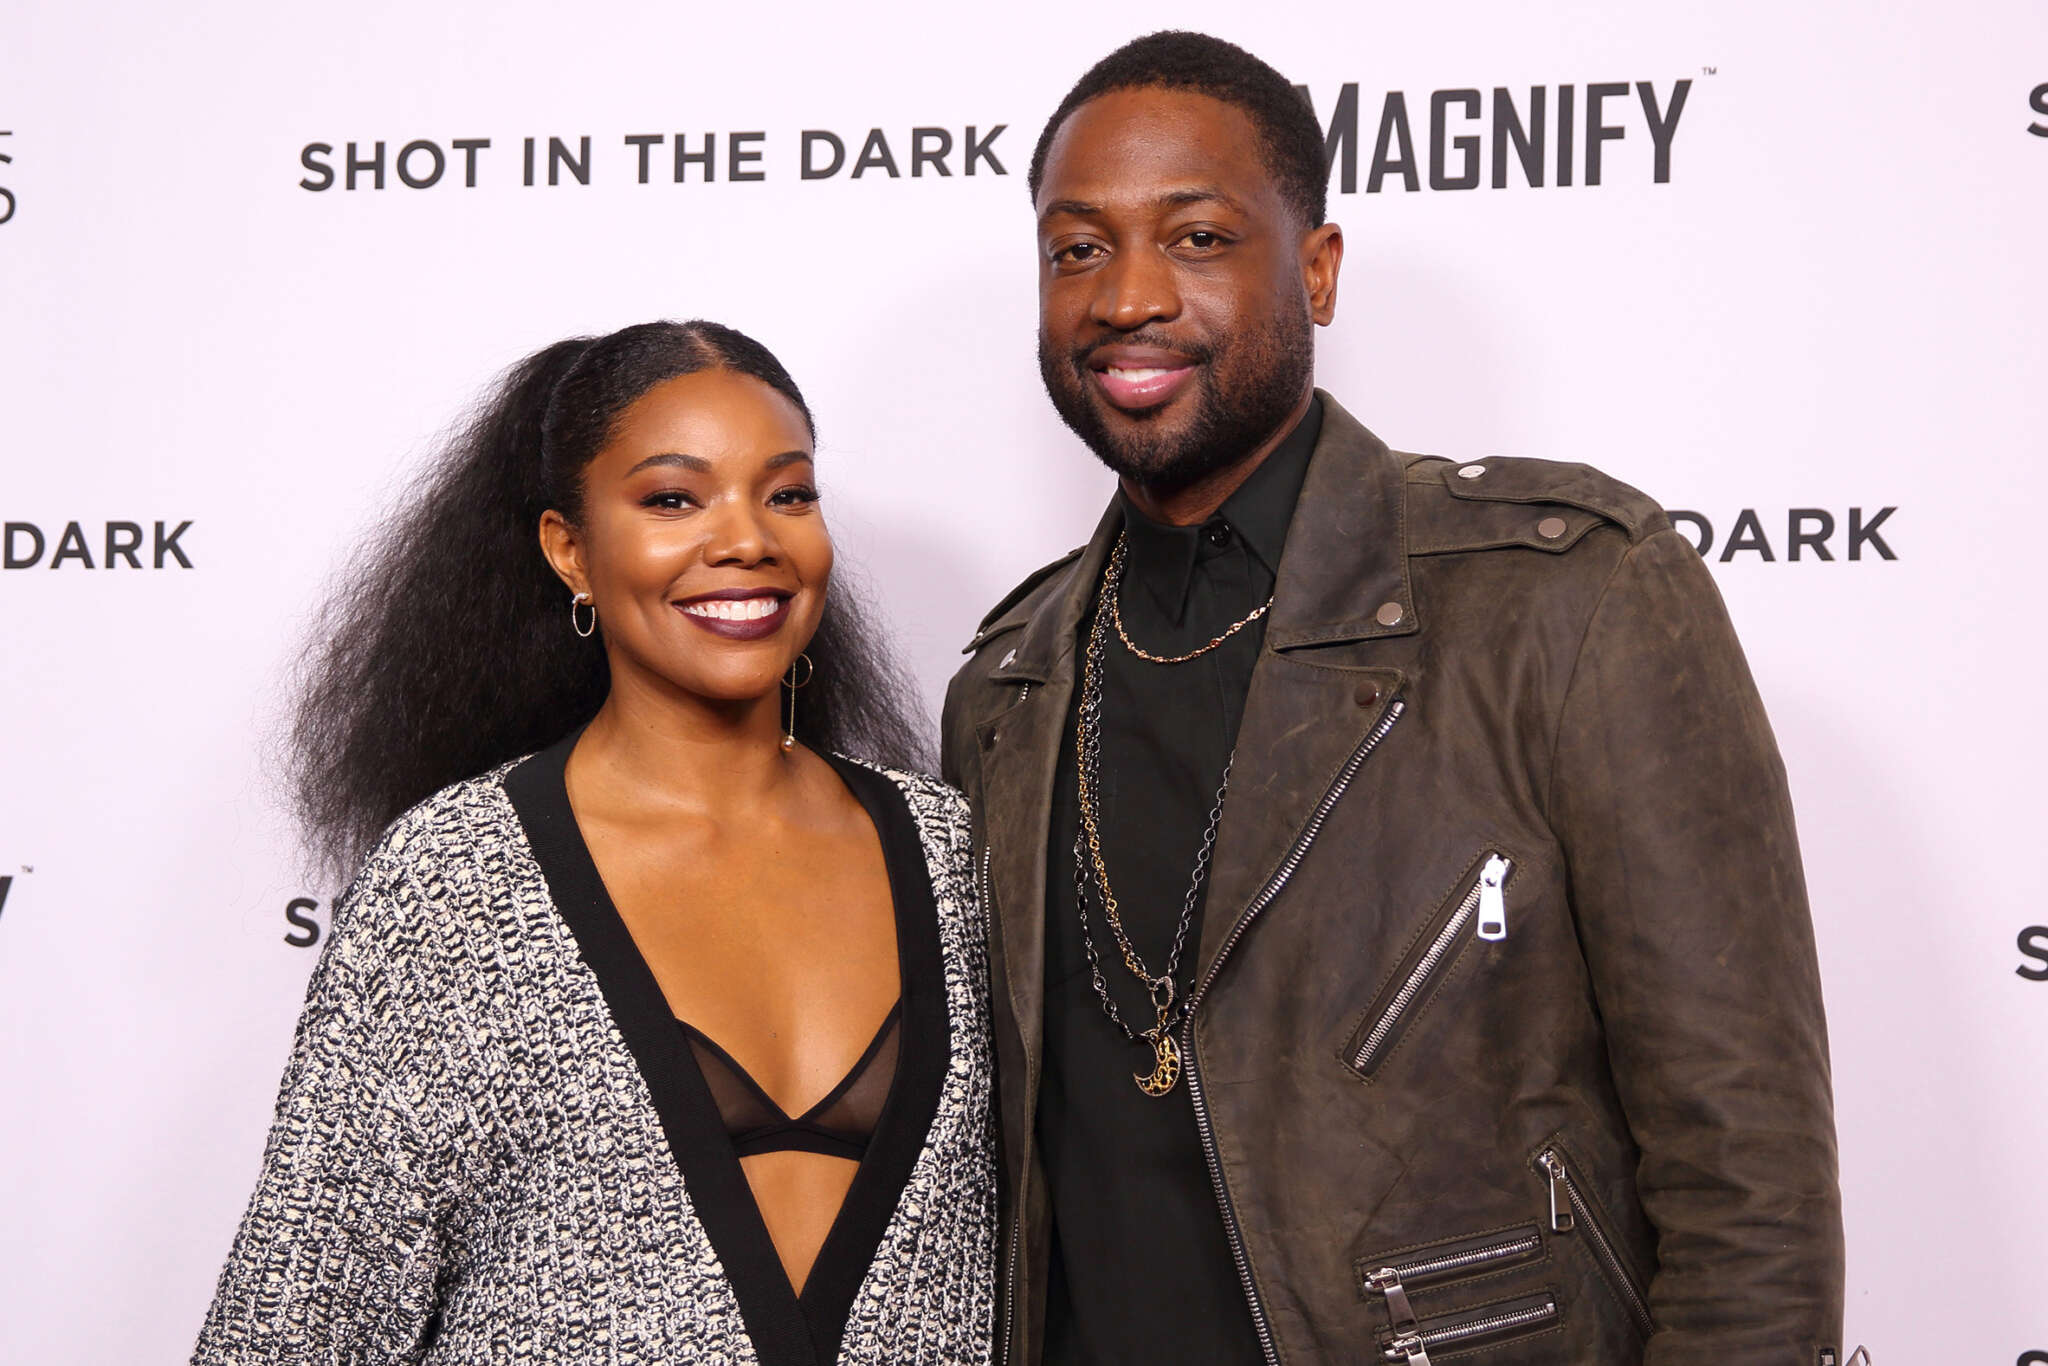 gabrielle-union-shares-new-pics-and-clips-from-her-weekend-with-dwyane-wade